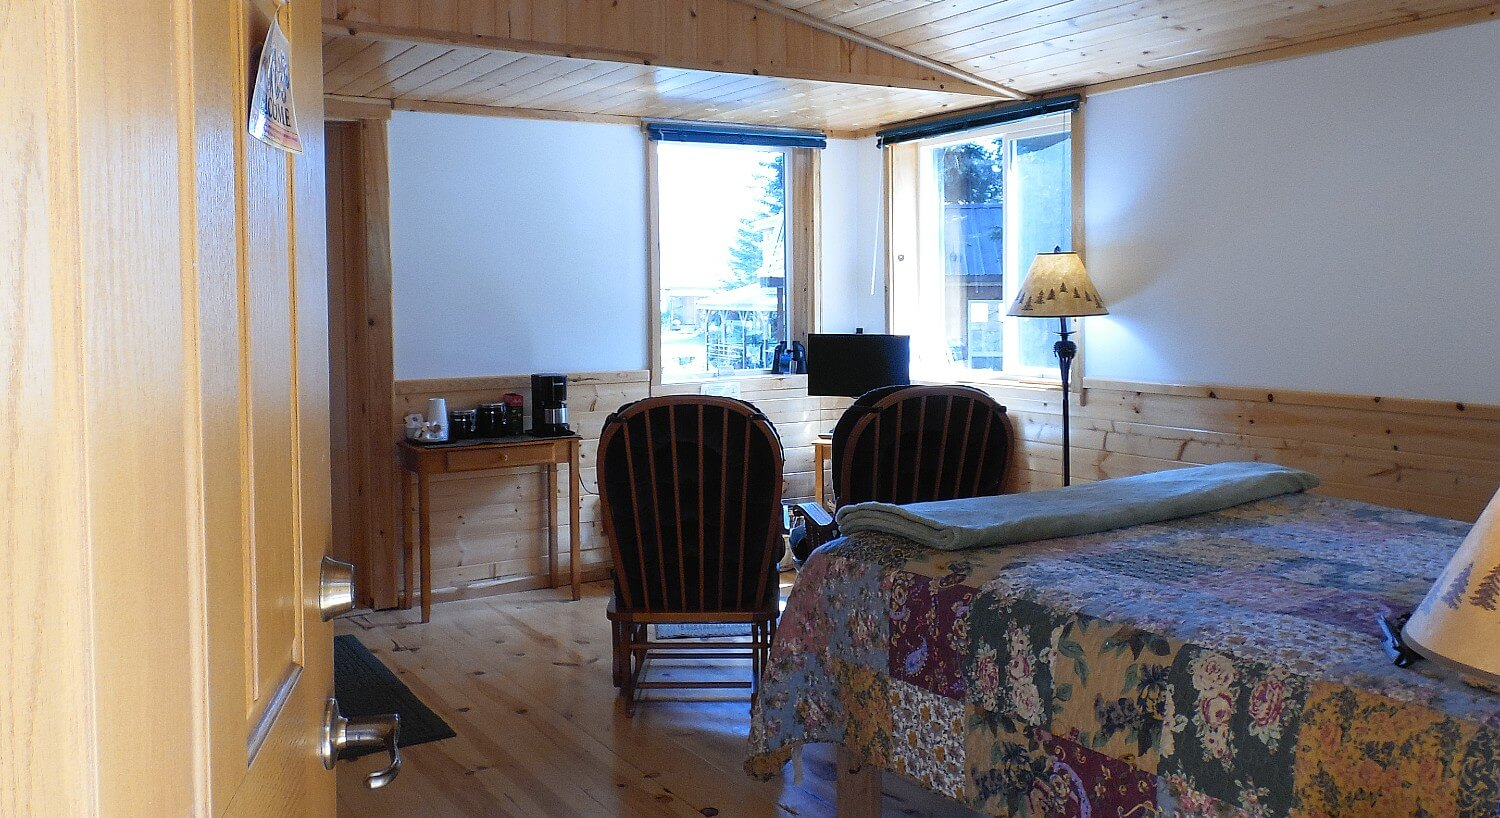 Cabin guest room featuring wood paneled walls and ceiling, queen bed, and two sitting chairs in front of large windows